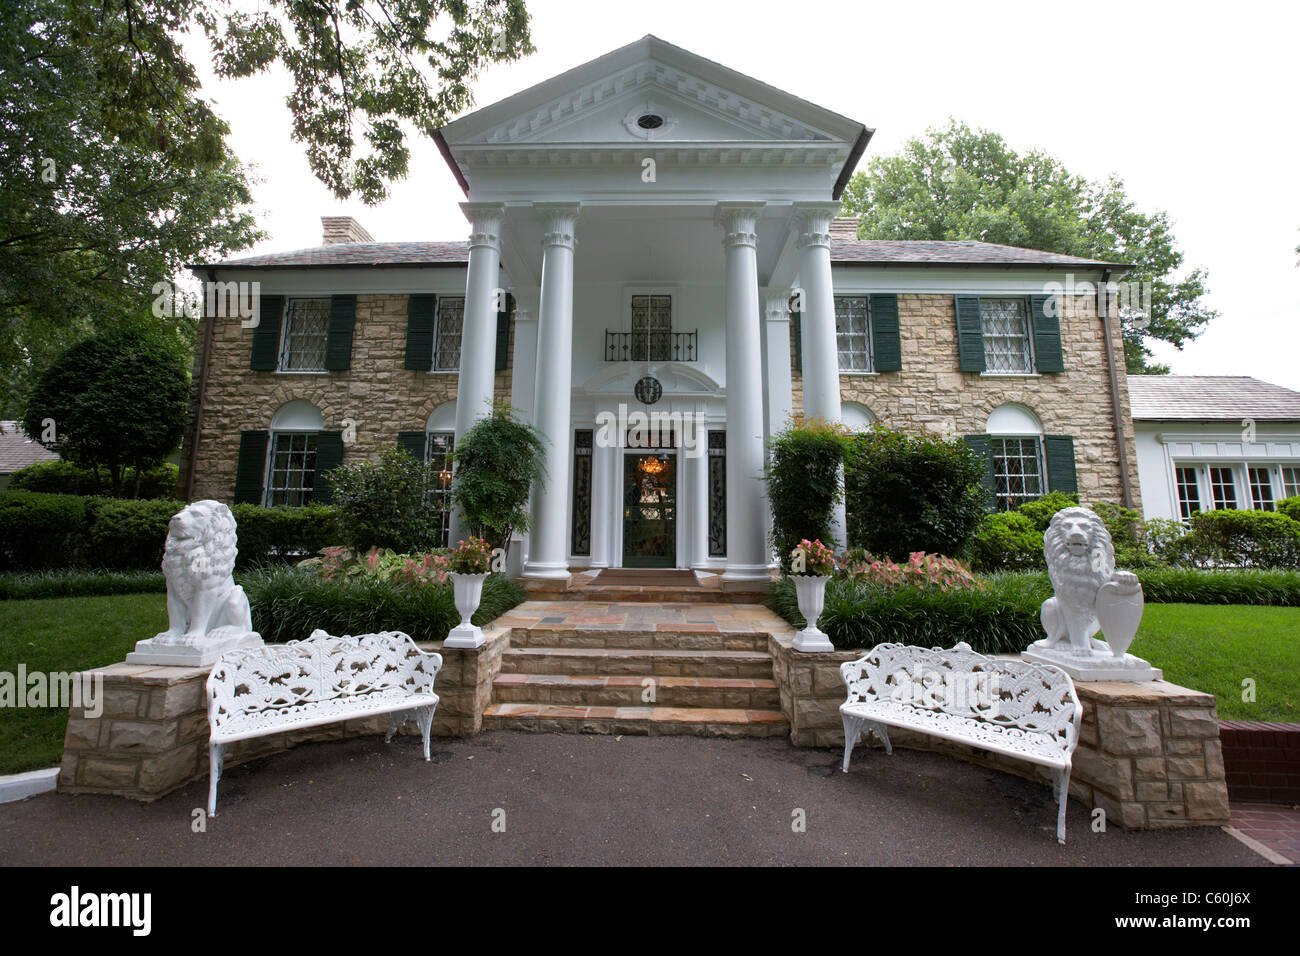 graceland mansion memphis tennessee usa - Stock Image